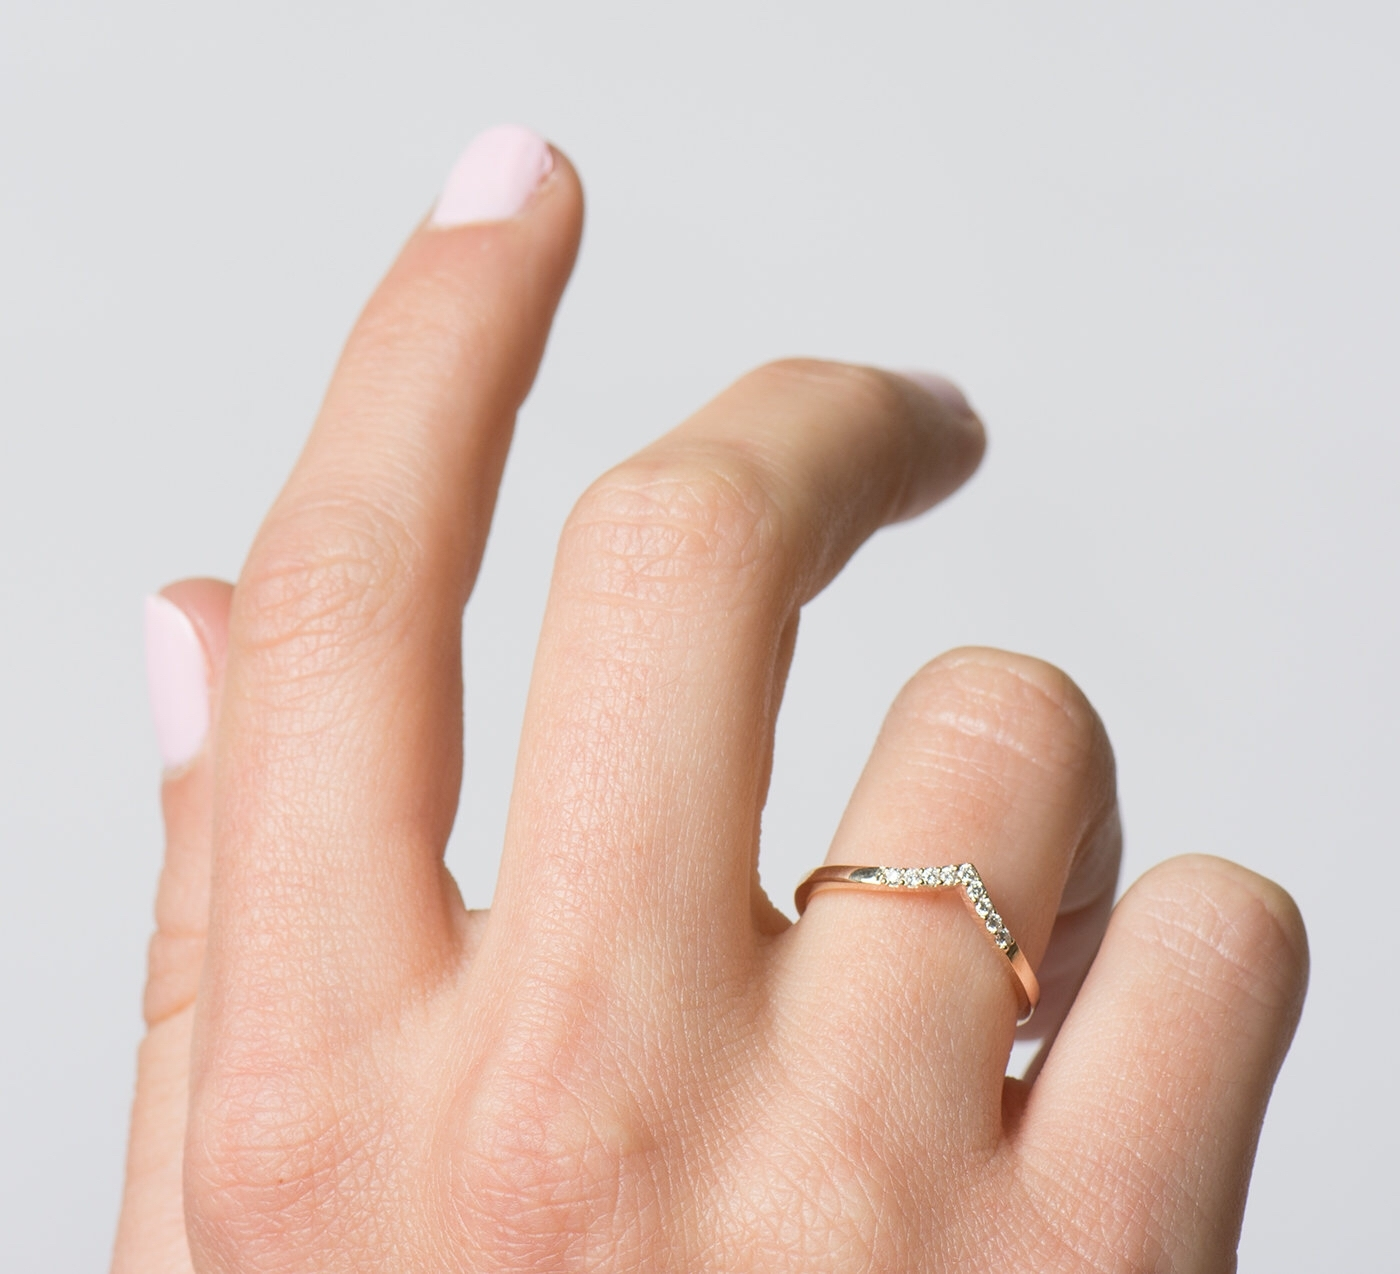 Alianças De Casamento De Ouro | Rose Gold Diamond Ring, Chevron For Most Popular Chevron Finger Rings (Gallery 1 of 15)